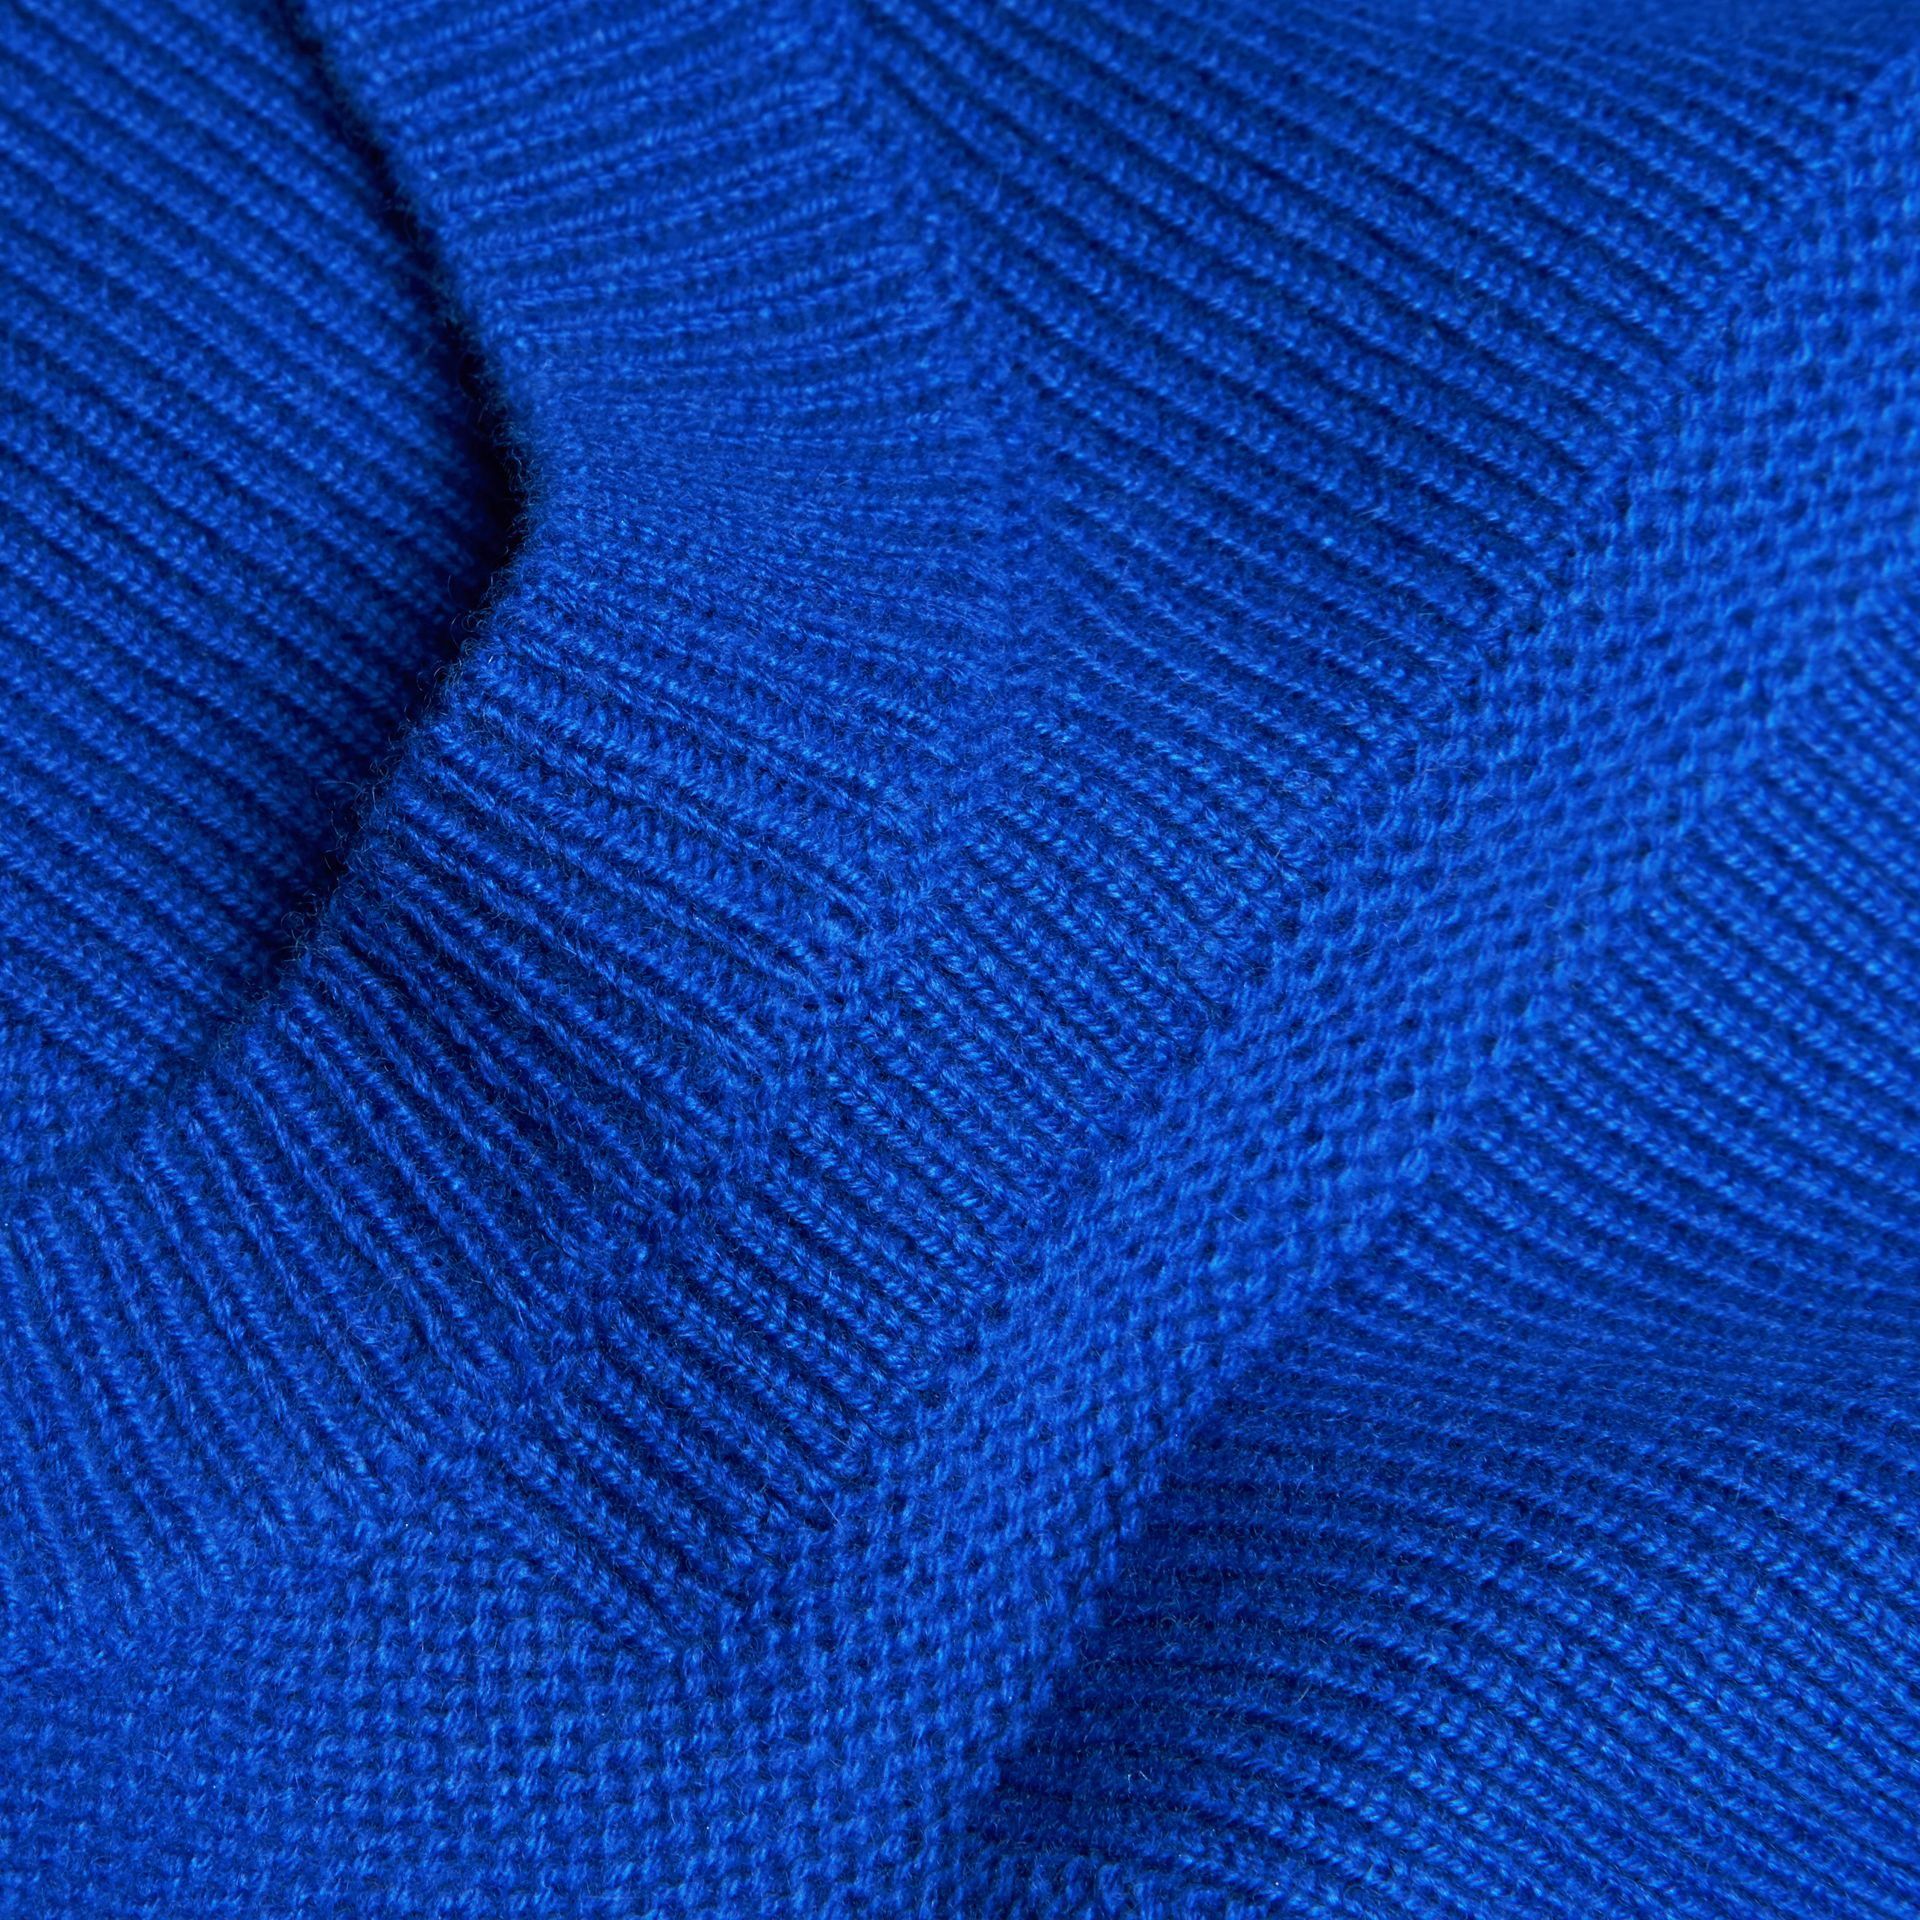 Sapphire blue Check-knit Wool Cashmere Sweater Sapphire Blue - gallery image 2